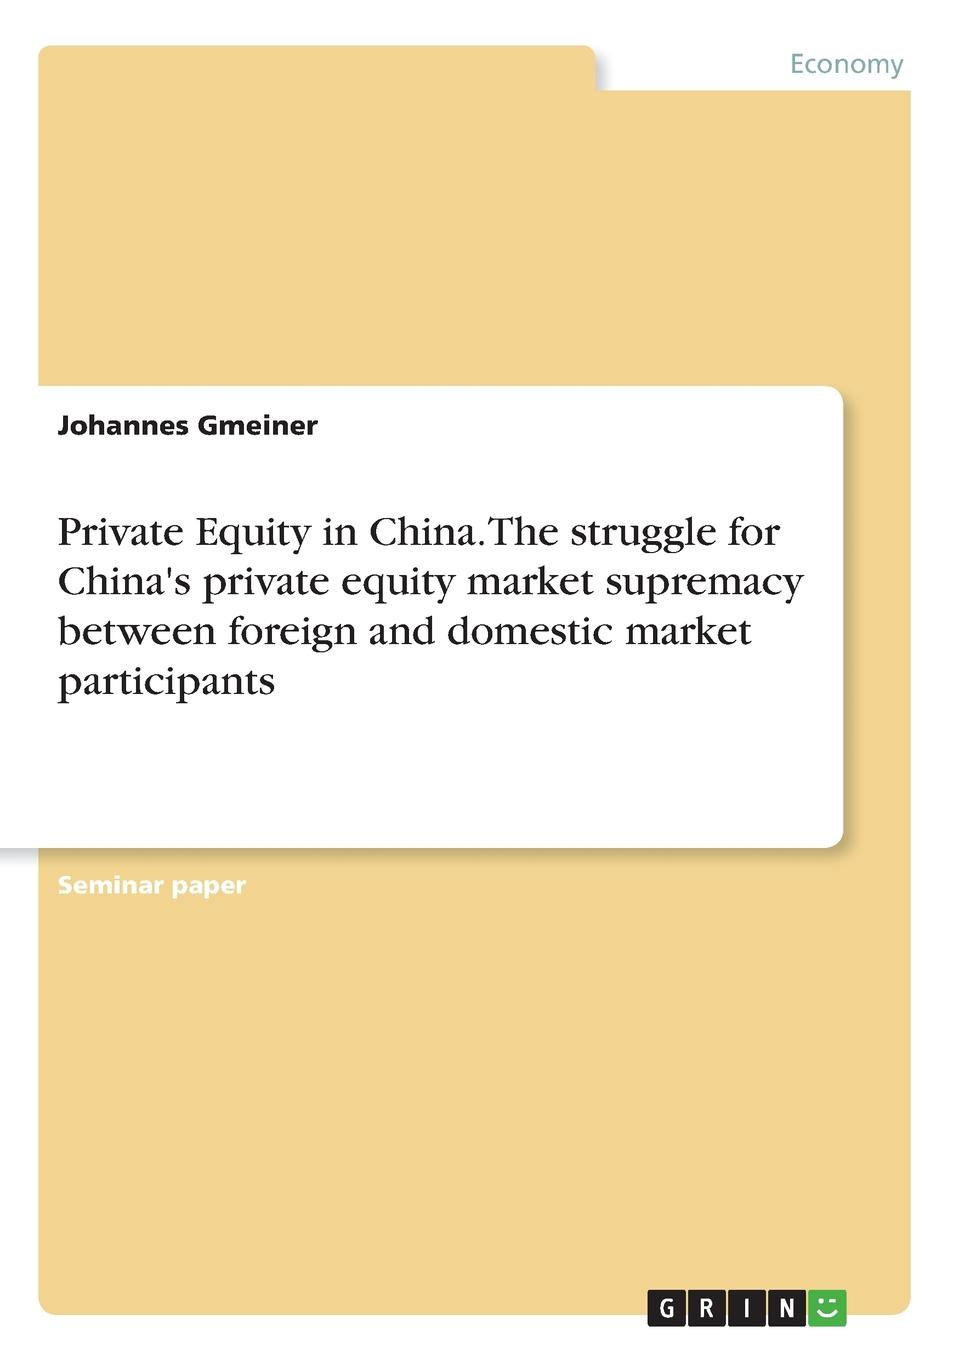 Johannes Gmeiner Private Equity in China. The struggle for China.s private equity market supremacy between foreign and domestic market participants